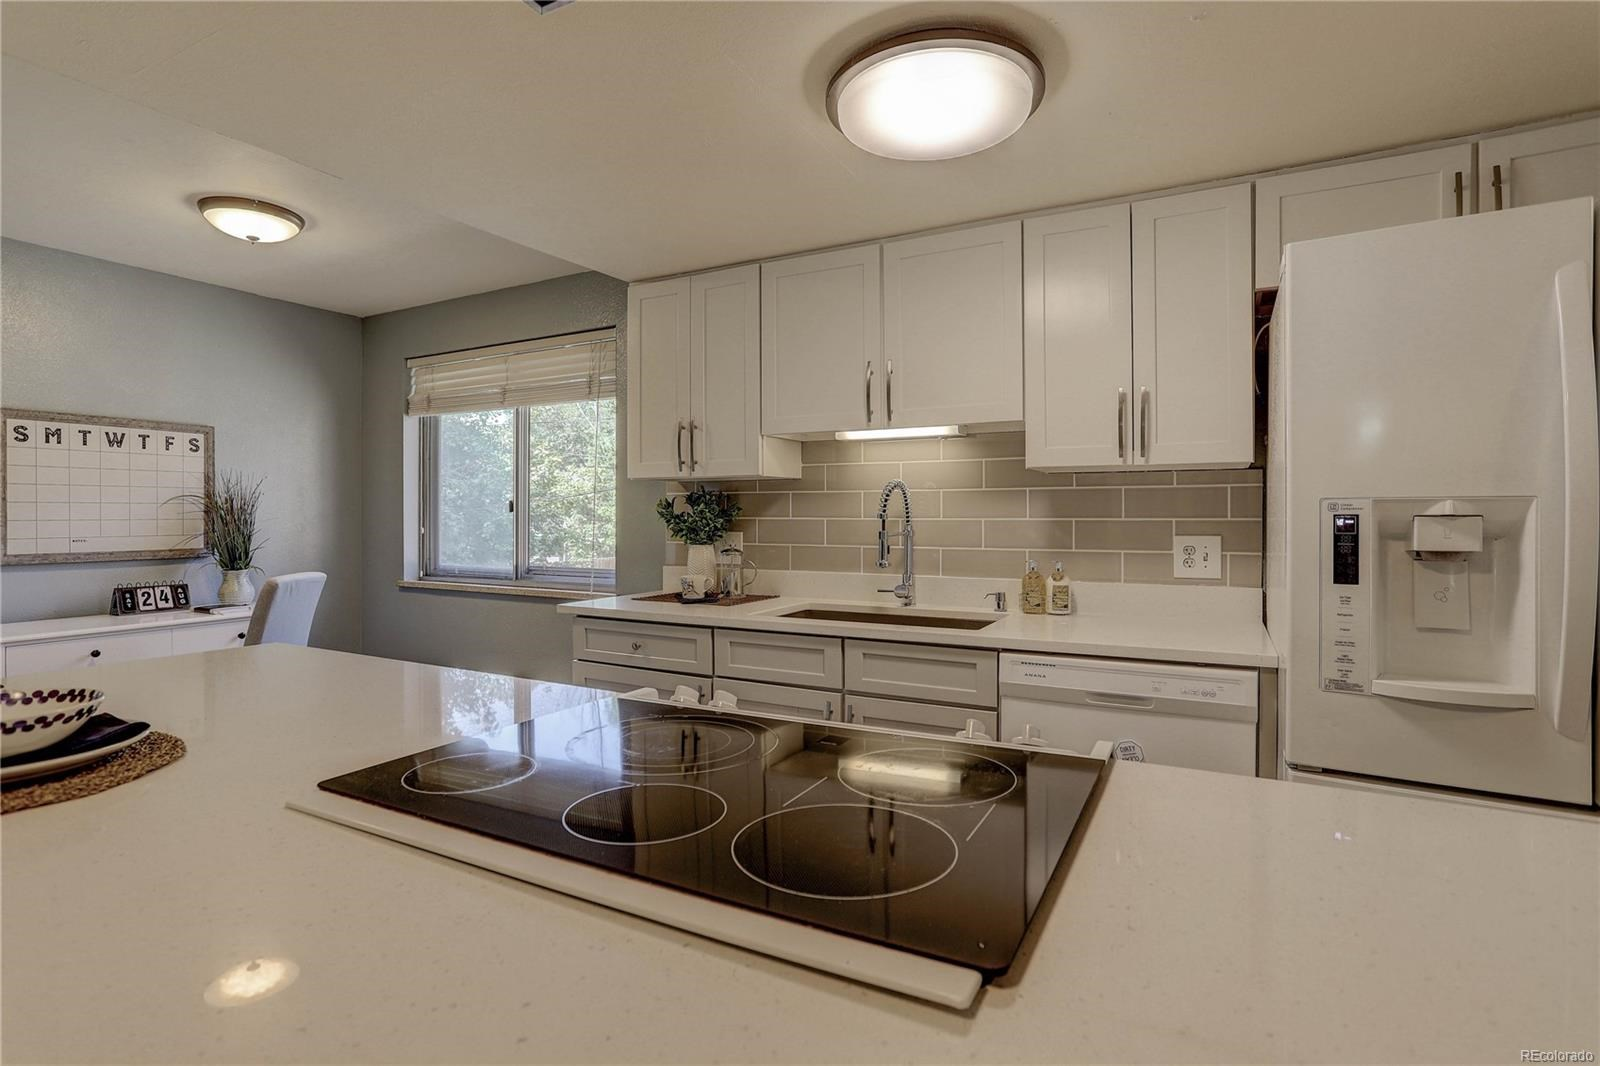 MLS# 2968148 - 7 - 2931 S Downing Street, Englewood, CO 80113